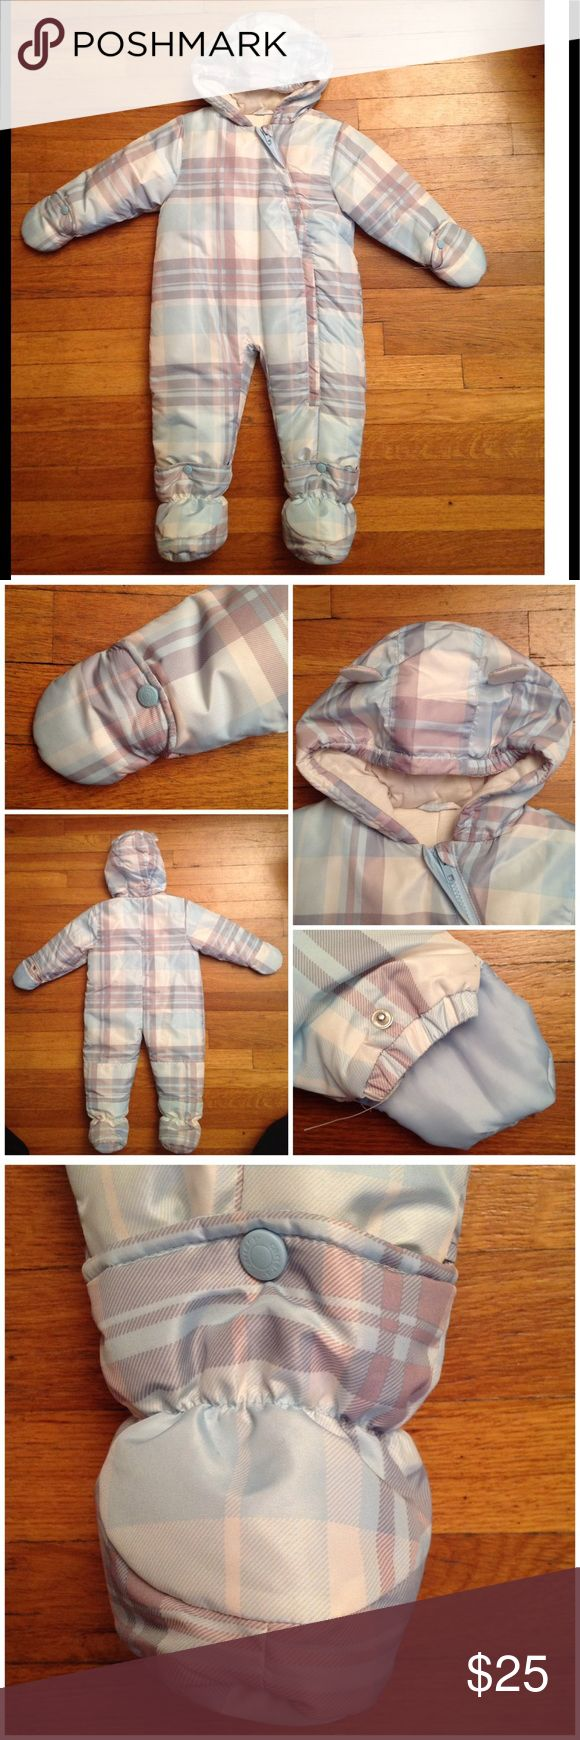 Onesie puffer plaid coat Curved zipper design at the front. Snap mittens, snap booties. Hood with cute ears design. Baby blue light grey and white plaid design. Puffer, with tee shirt fabric cotton lining.  Brand new no tags. Unisex Jackets & Coats Puffers